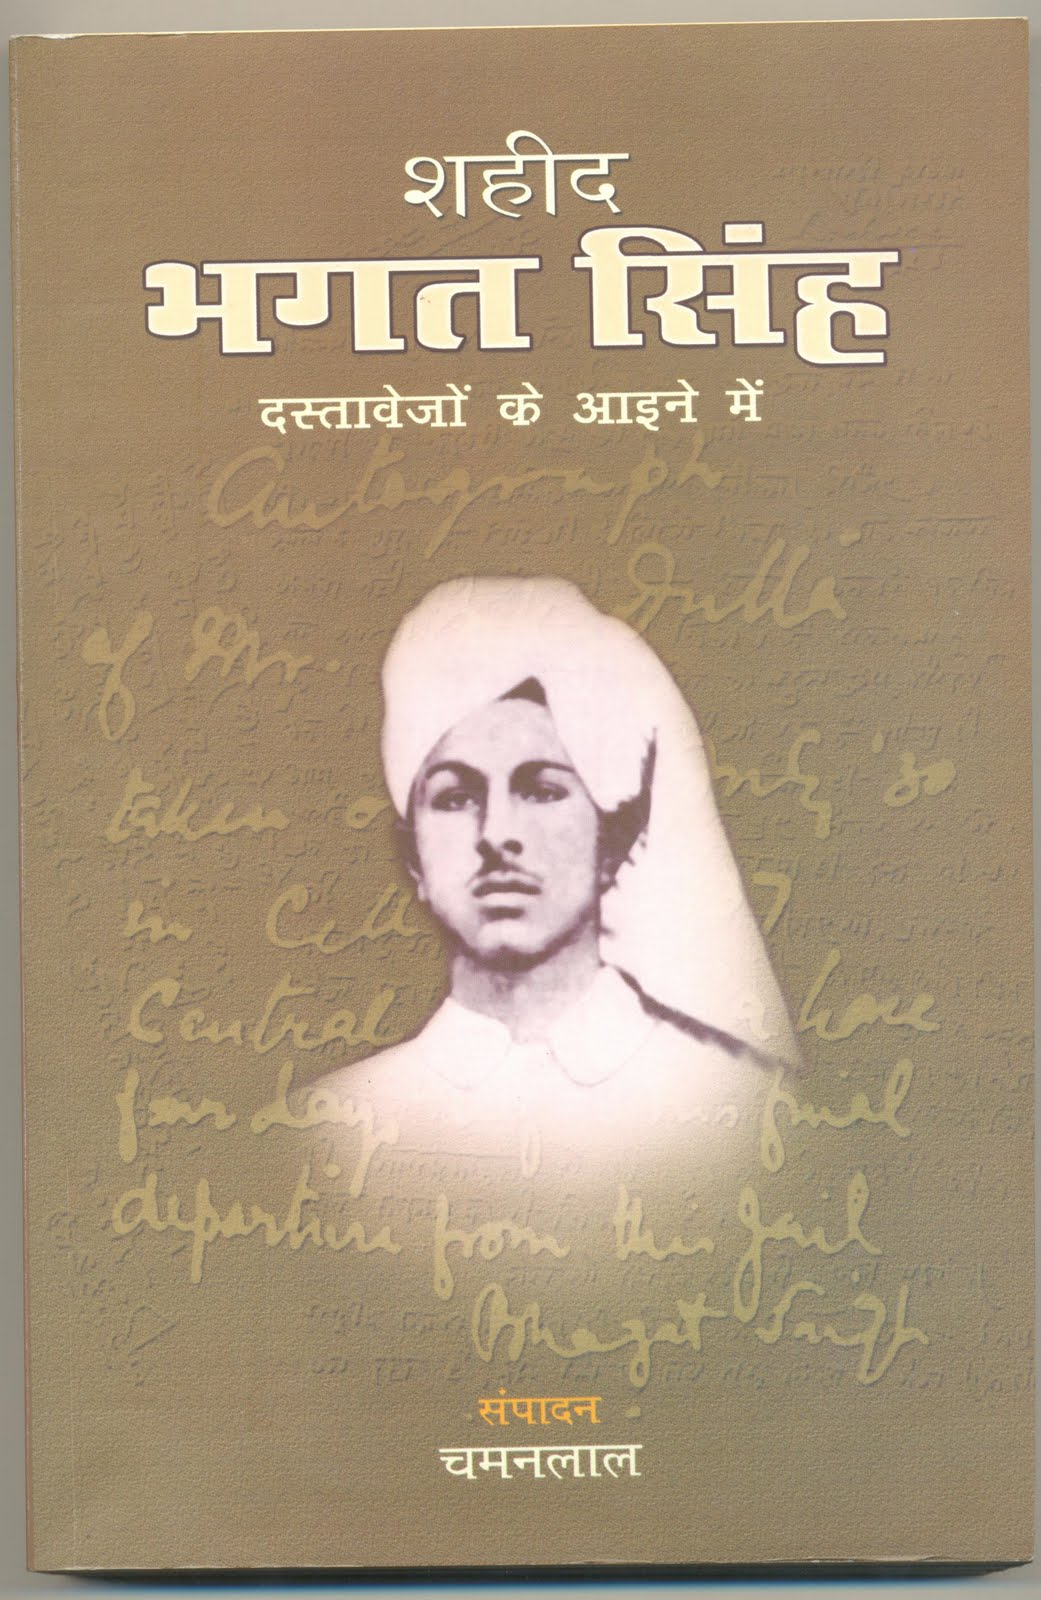 bhagat singh essay bhagat singh defamed in du text book essays  bhagat singh study chaman lal bhagat singh personality through bhagat singh personality through comprehensive documents